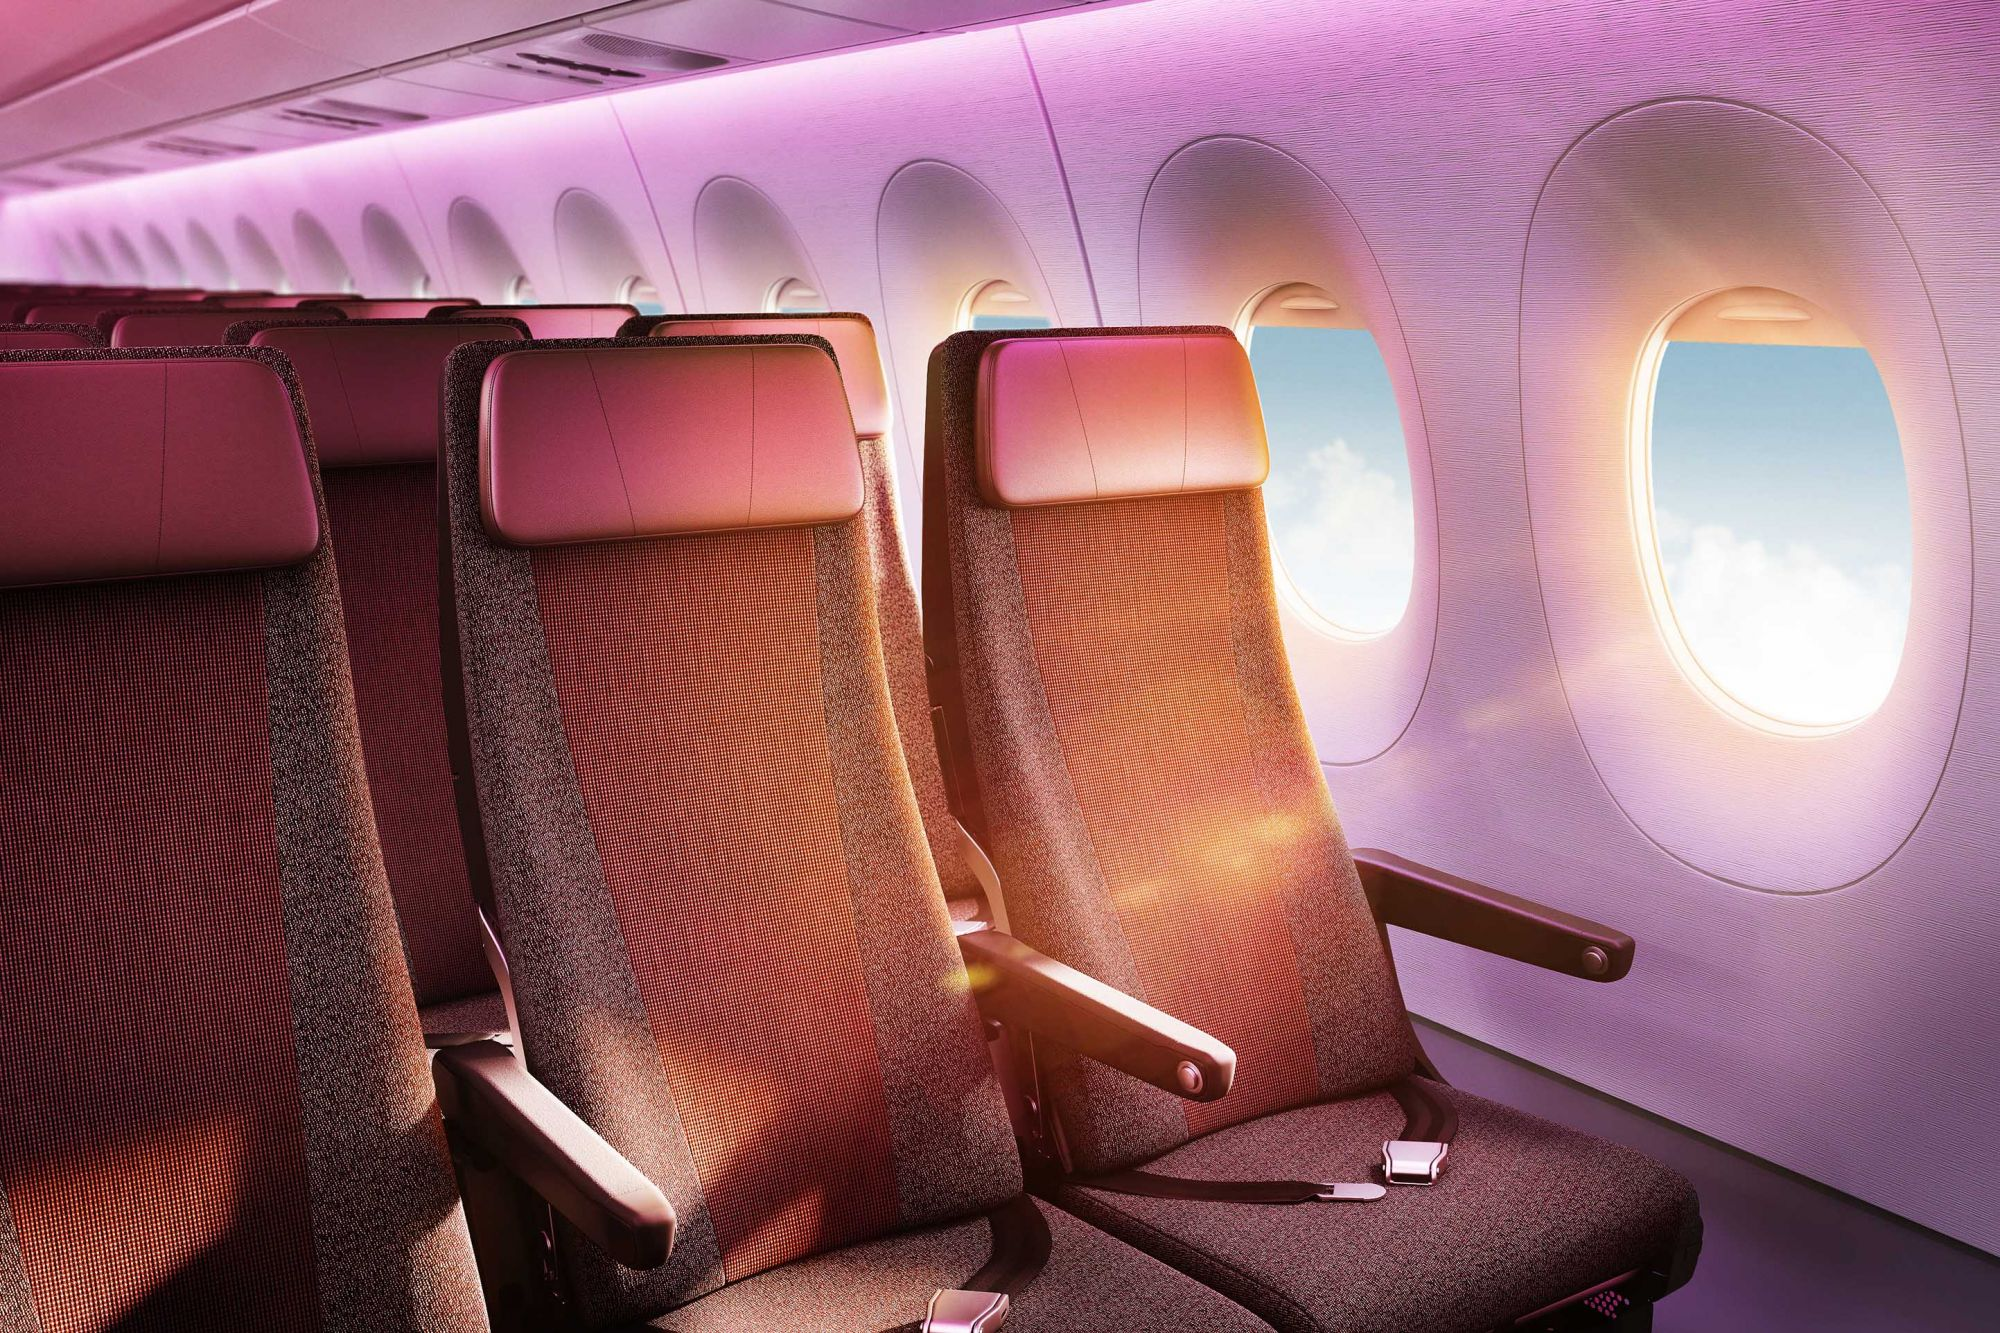 With Seats Inspired by Luxury Fashion, This Aircraft Refines Flying In Style